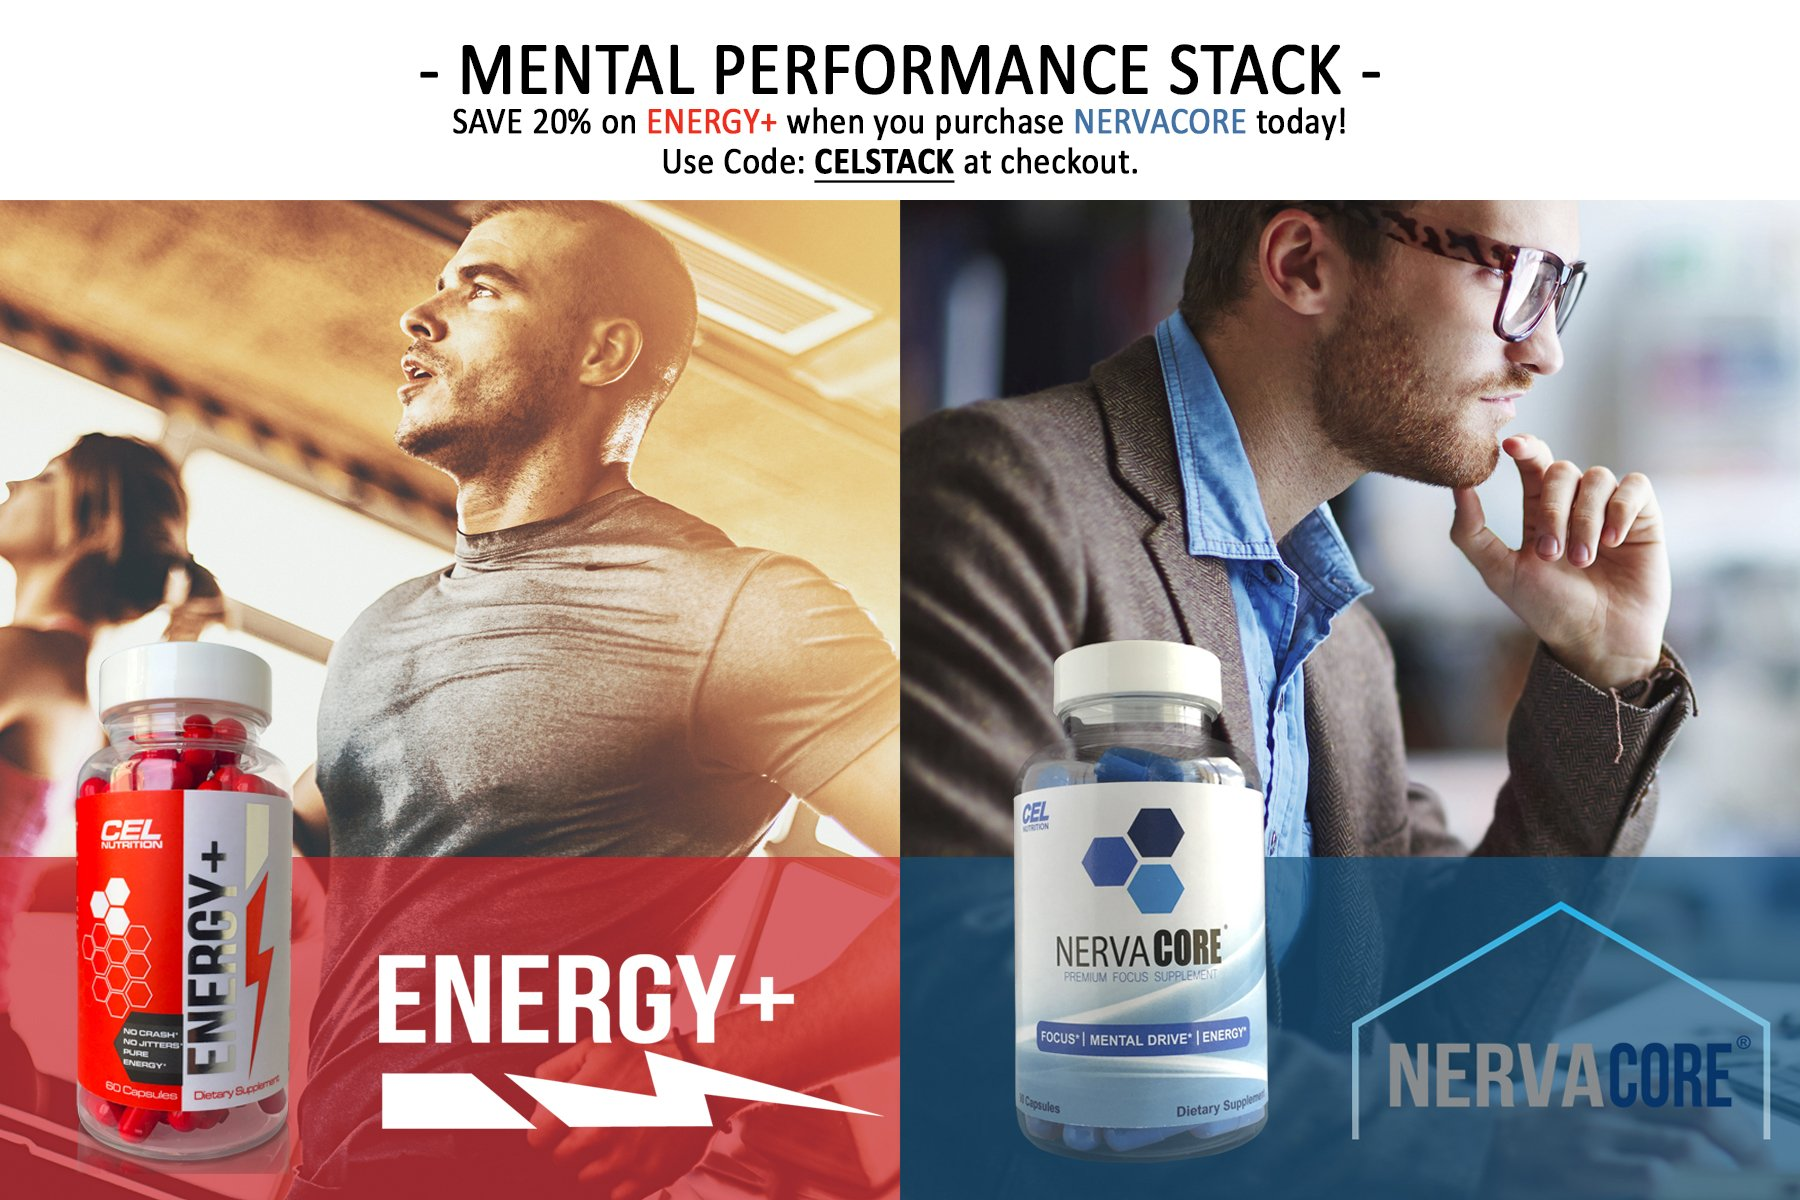 Energy Plus: Caffeine Pills 150mg & L-Theanine 200mg | Pure Focus & Energy Formula for Improving Concentration, Attention, Mood, and Cognition | All Natural Nootropic Tablets | 60 Capsules & Servings